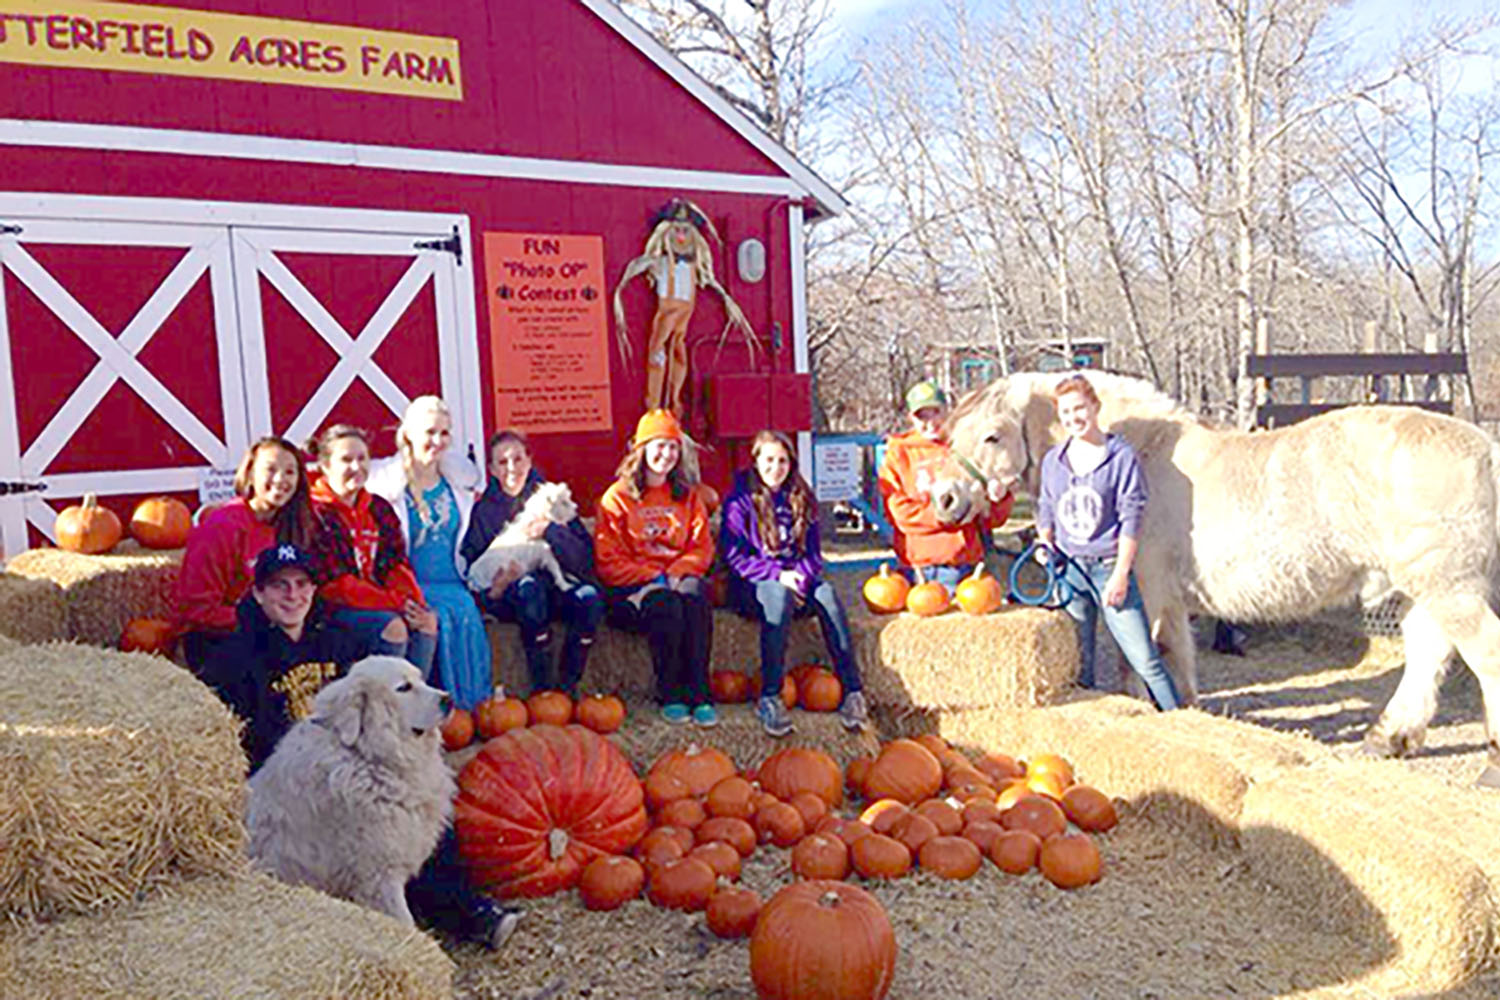 butterfield-acres-pumpkin-patches-calgary